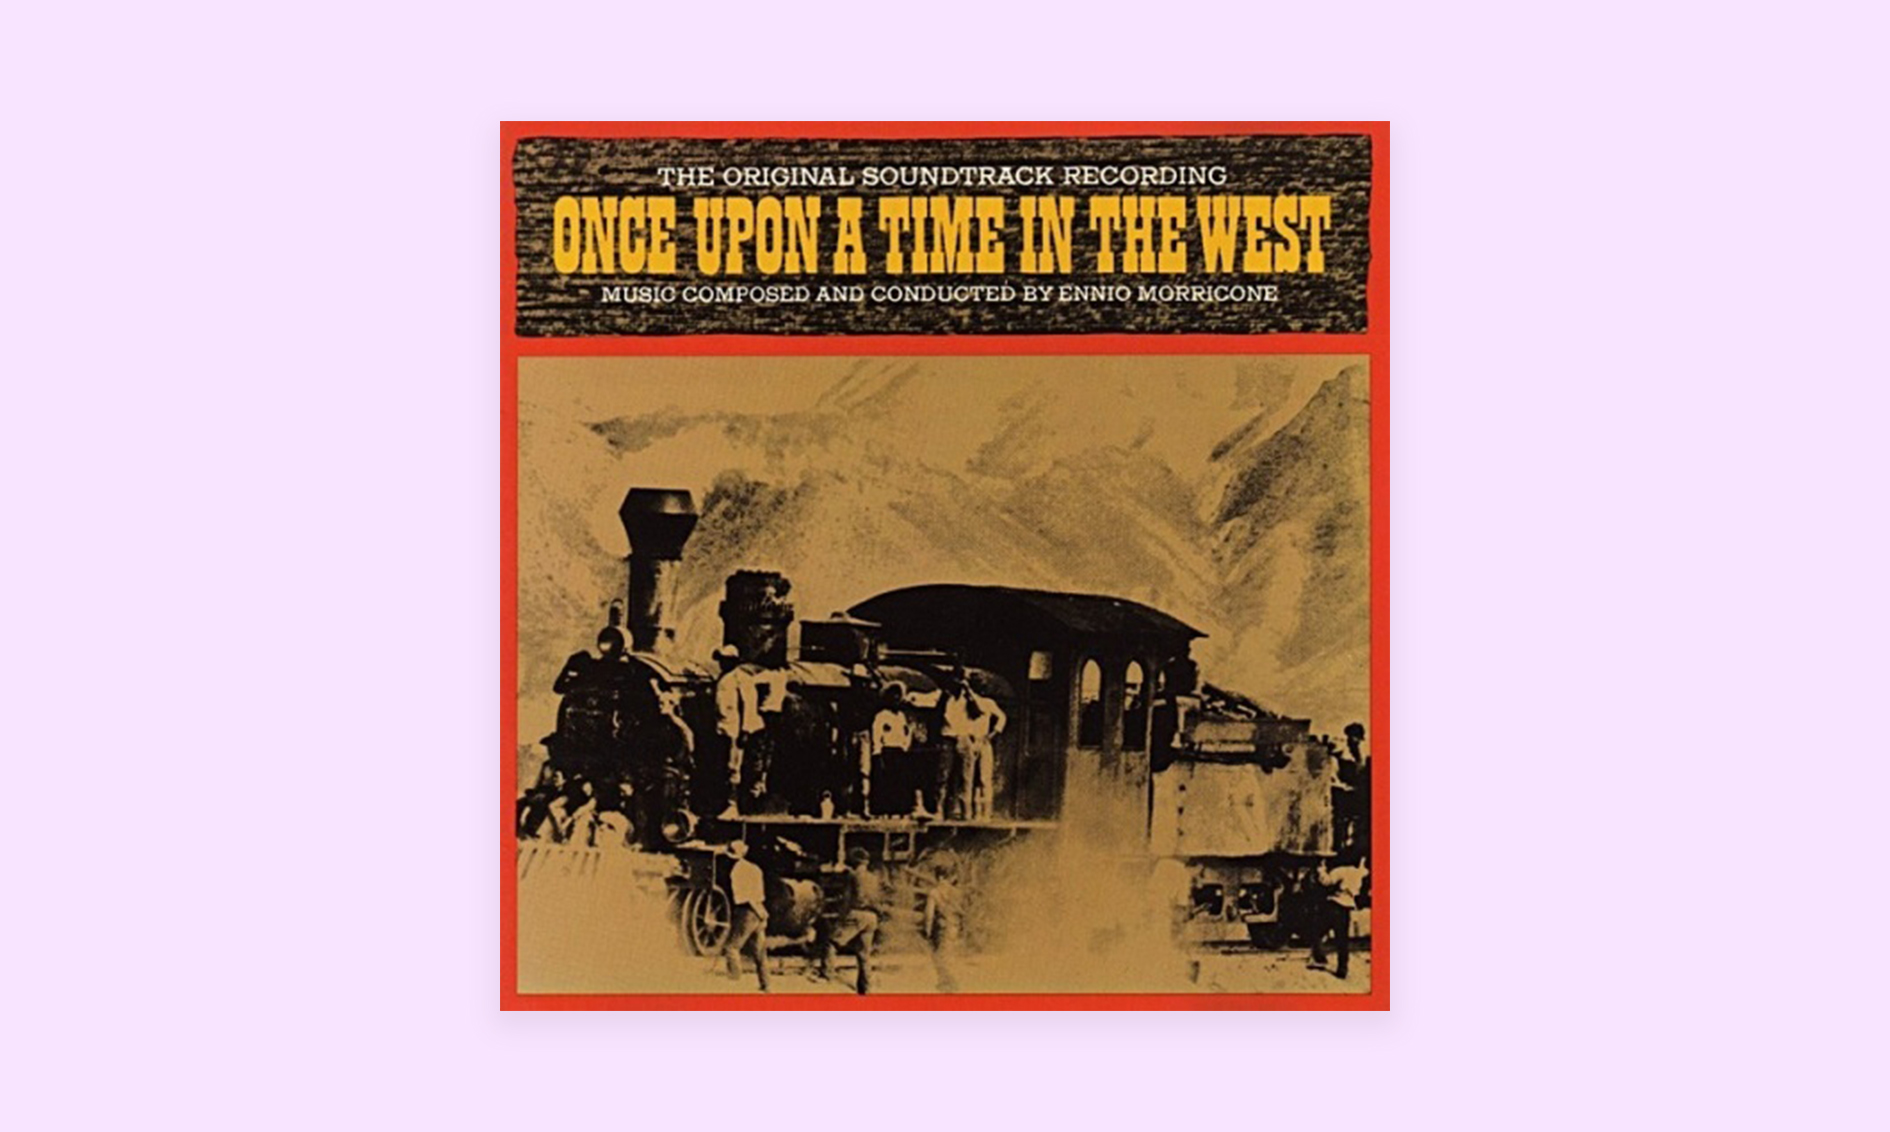 film scores for focus Once Upon a Time in the West Ennio Morricone